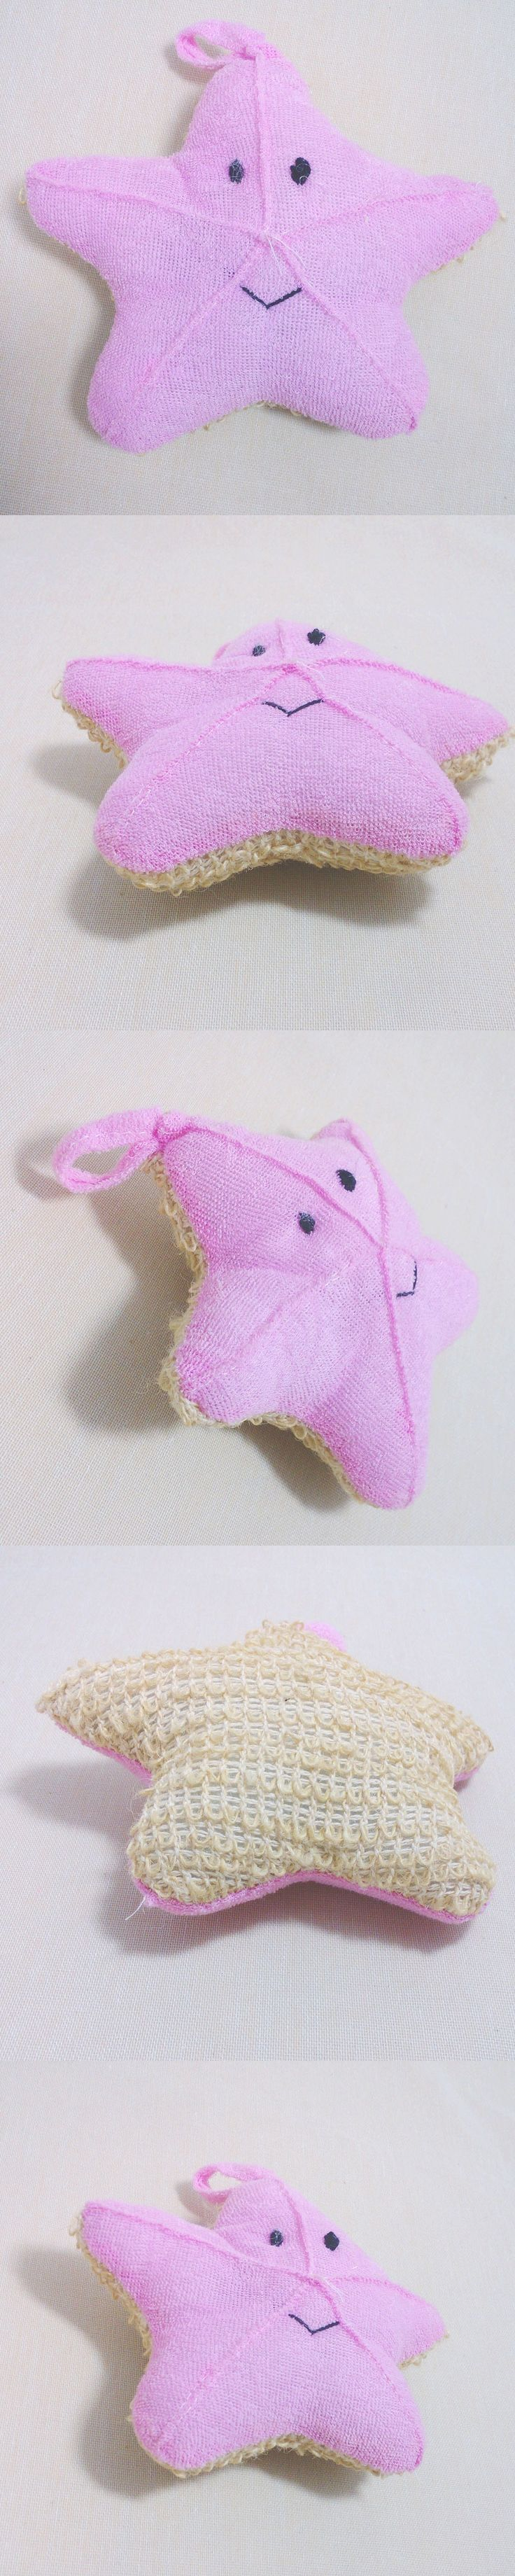 Cute Baby Bath Sponge Cartoon Starfish Super Soft Cotton Brush Rubbing Towel Ball New Bath Gloves H7JP